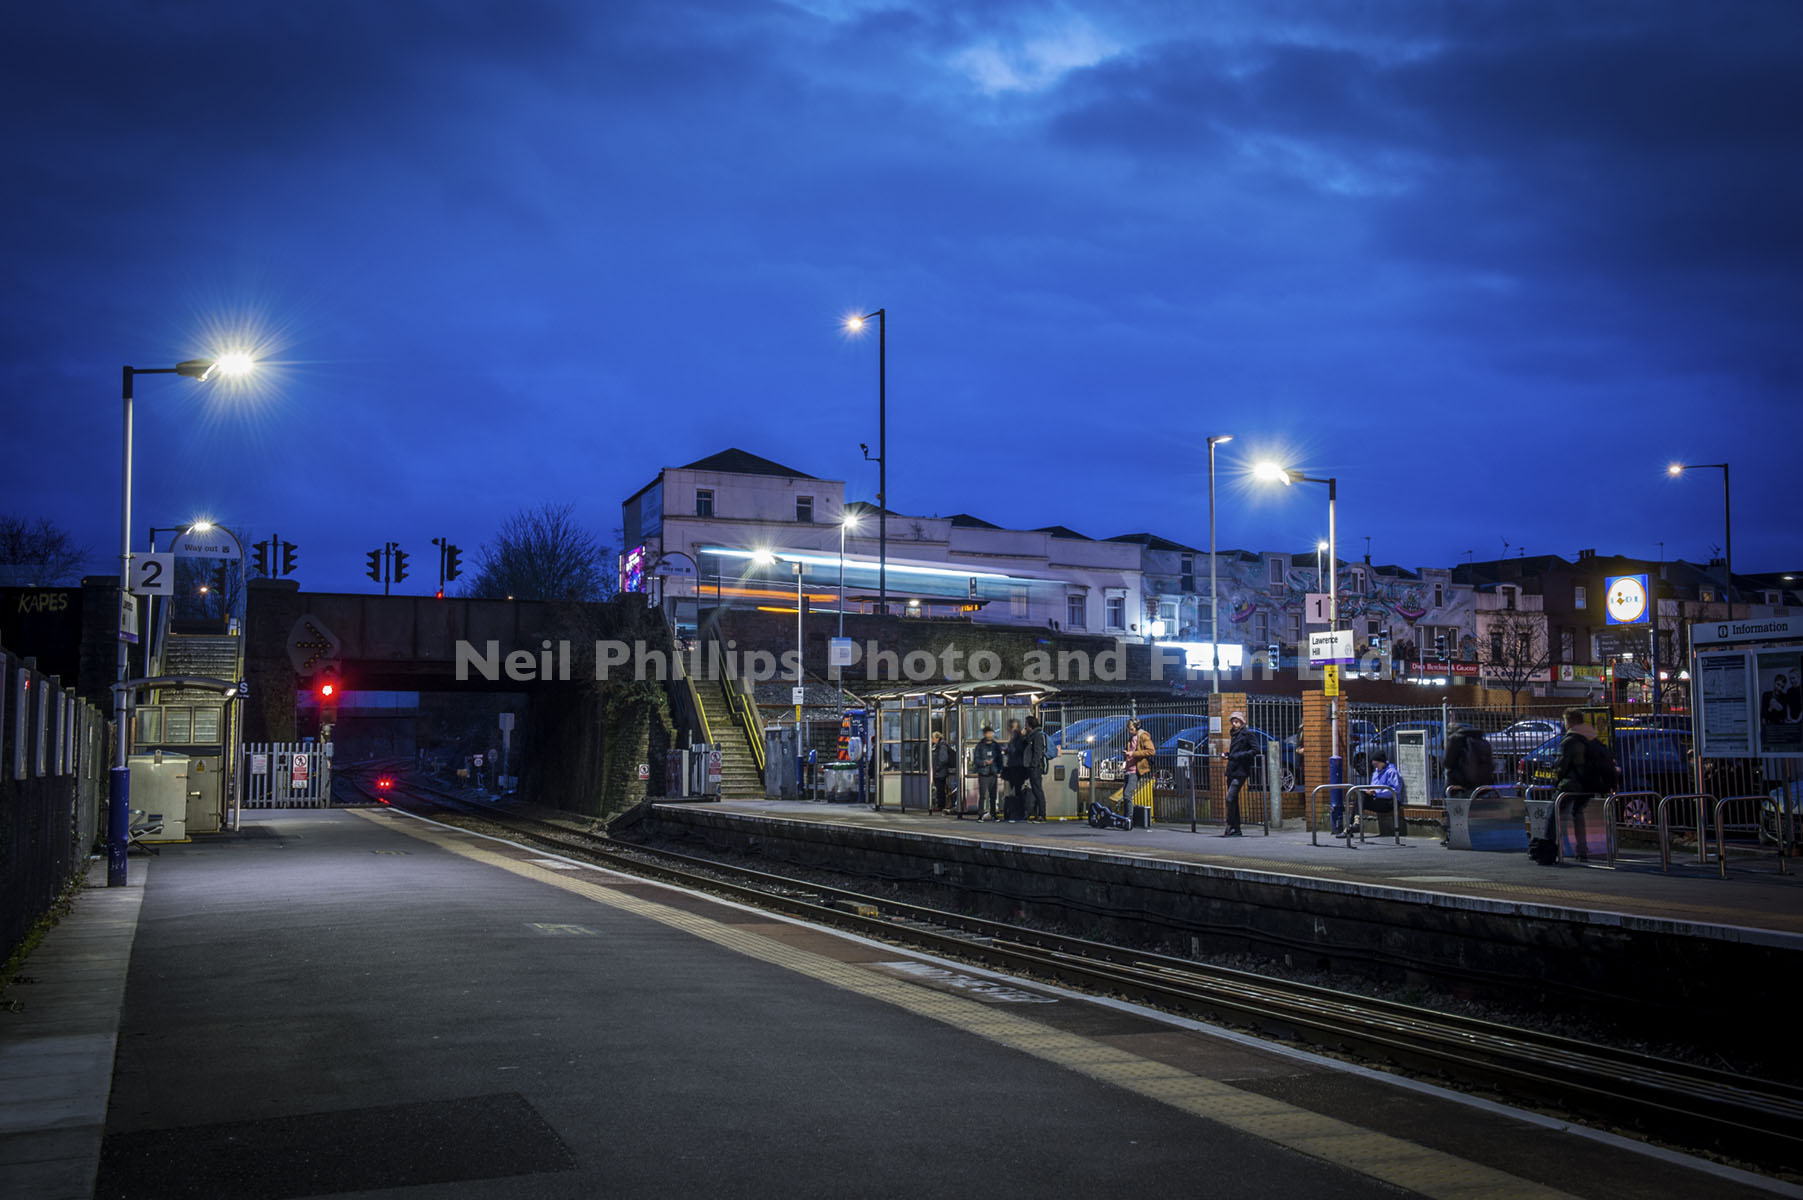 Lawrence Hill Station, Severn Beach Line, GWR, Commercial Photographer in Bristol,